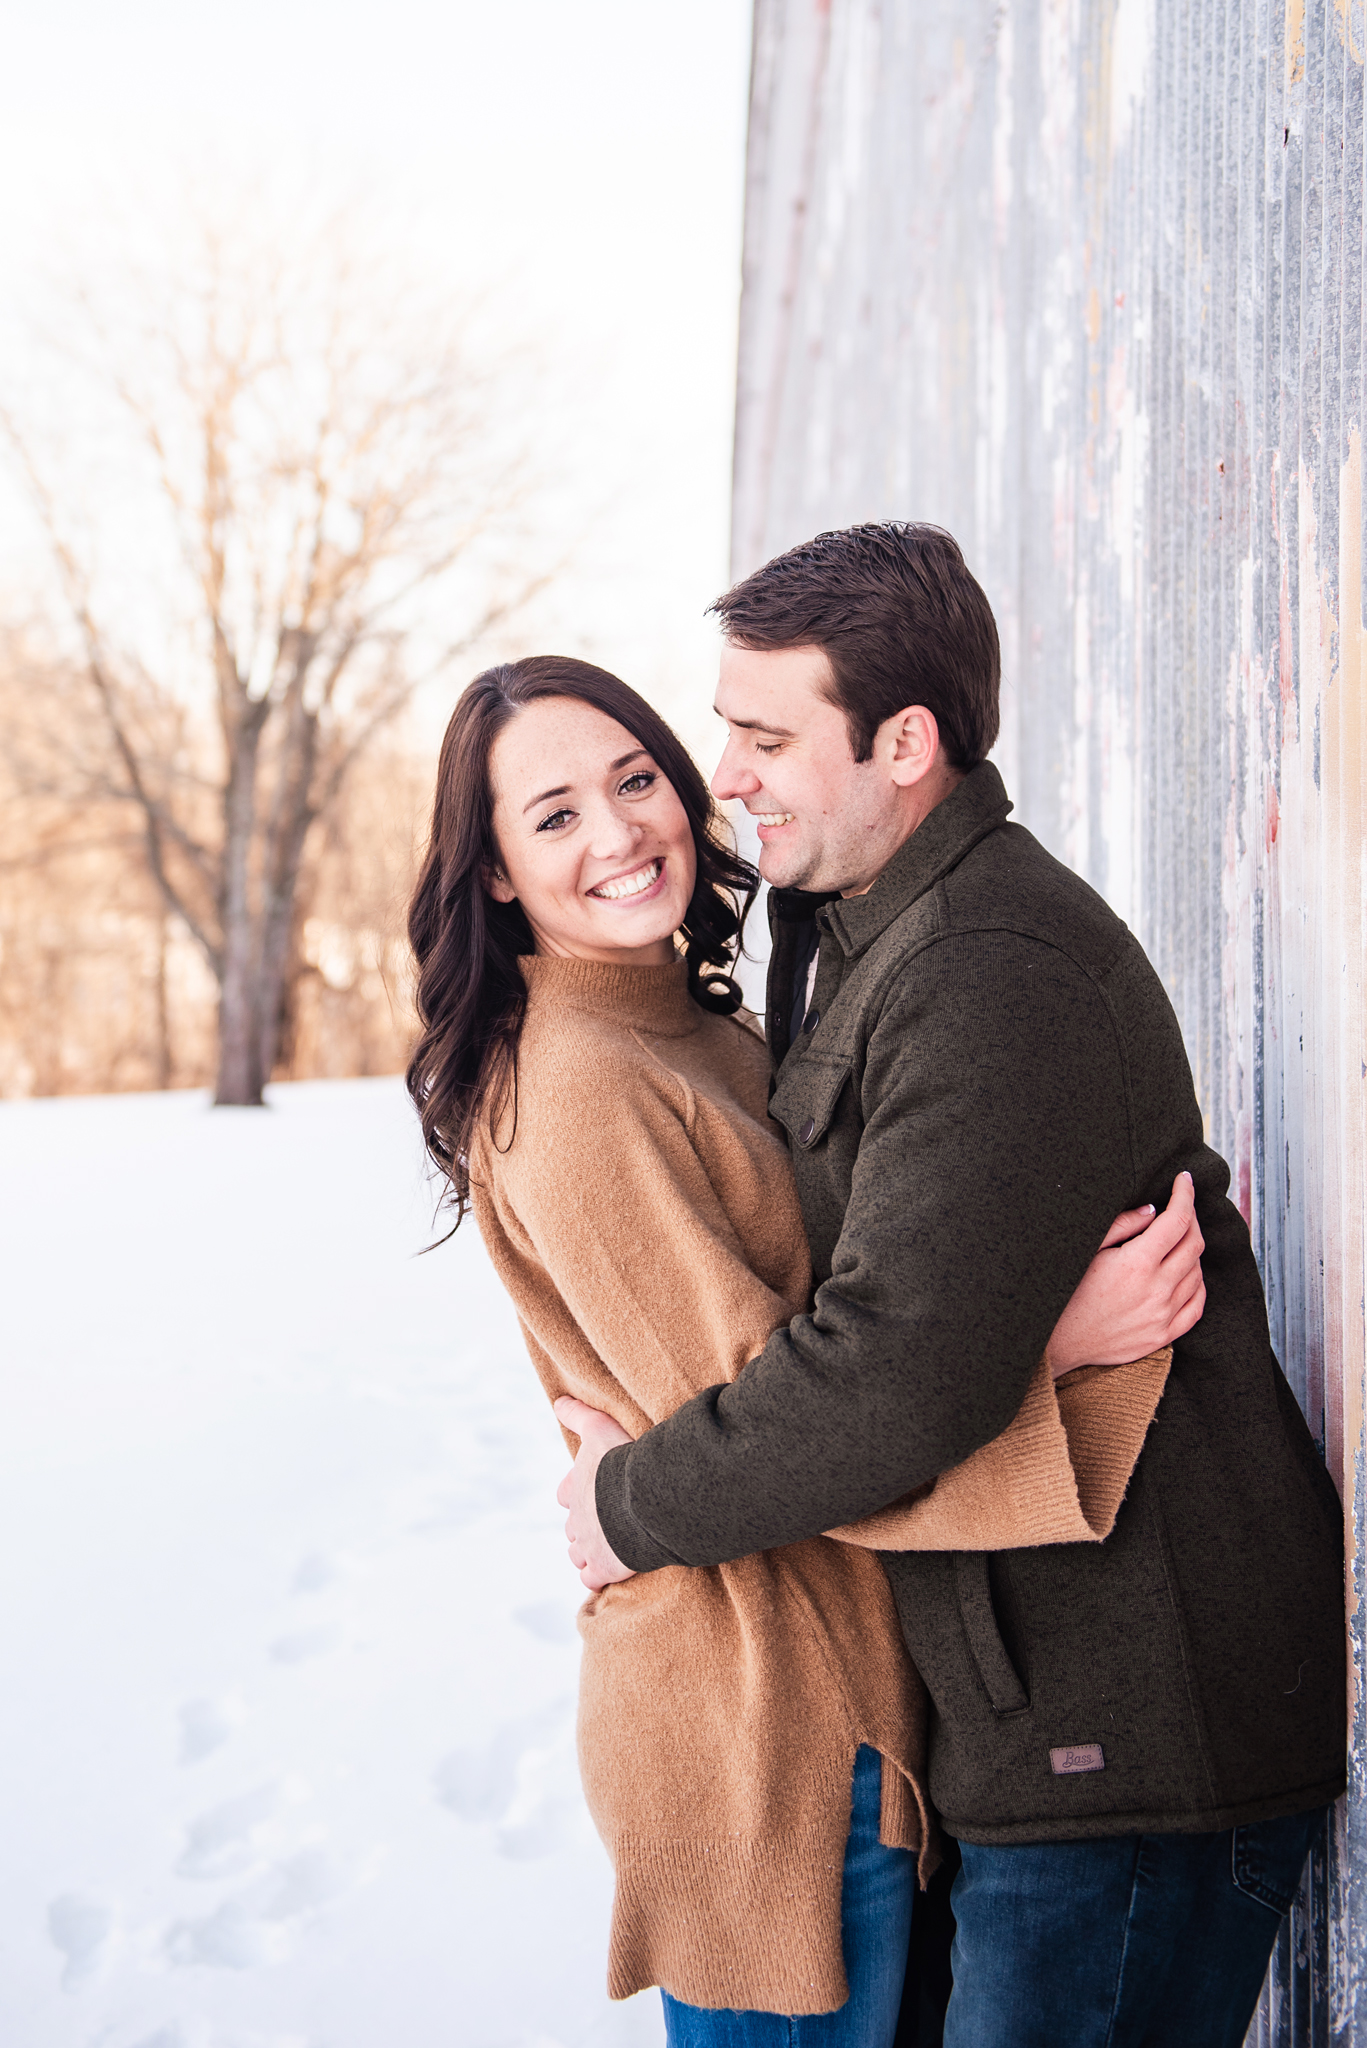 Fallbrook_Central_NY_Engagement_Session_JILL_STUDIO_Rochester_NY_Photographer_DSC_4771.jpg